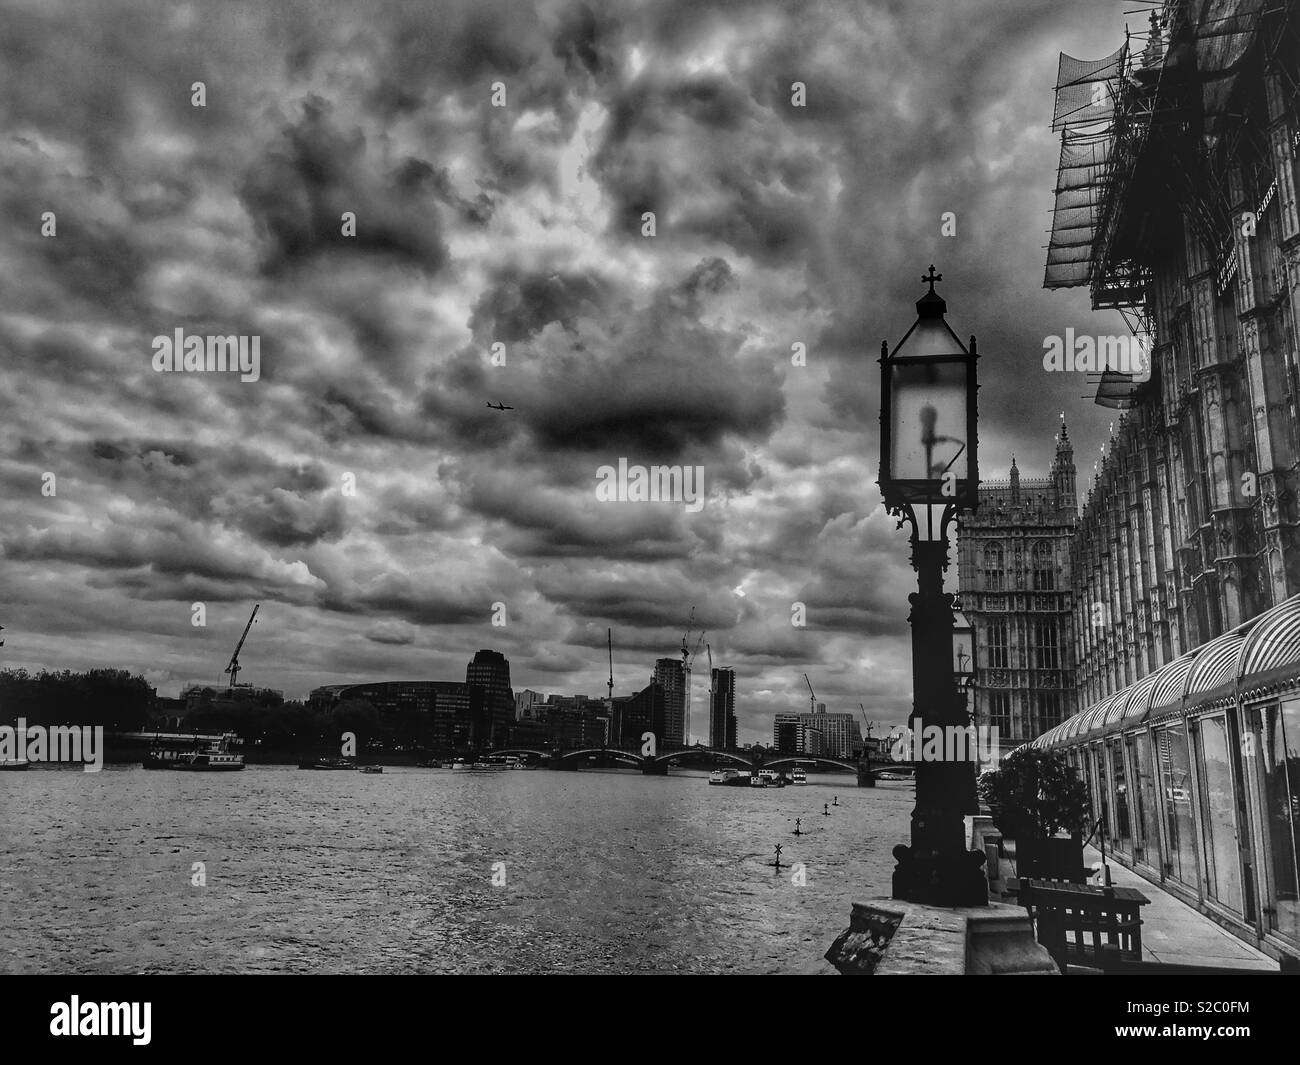 The Thames on a stormy night - Stock Image